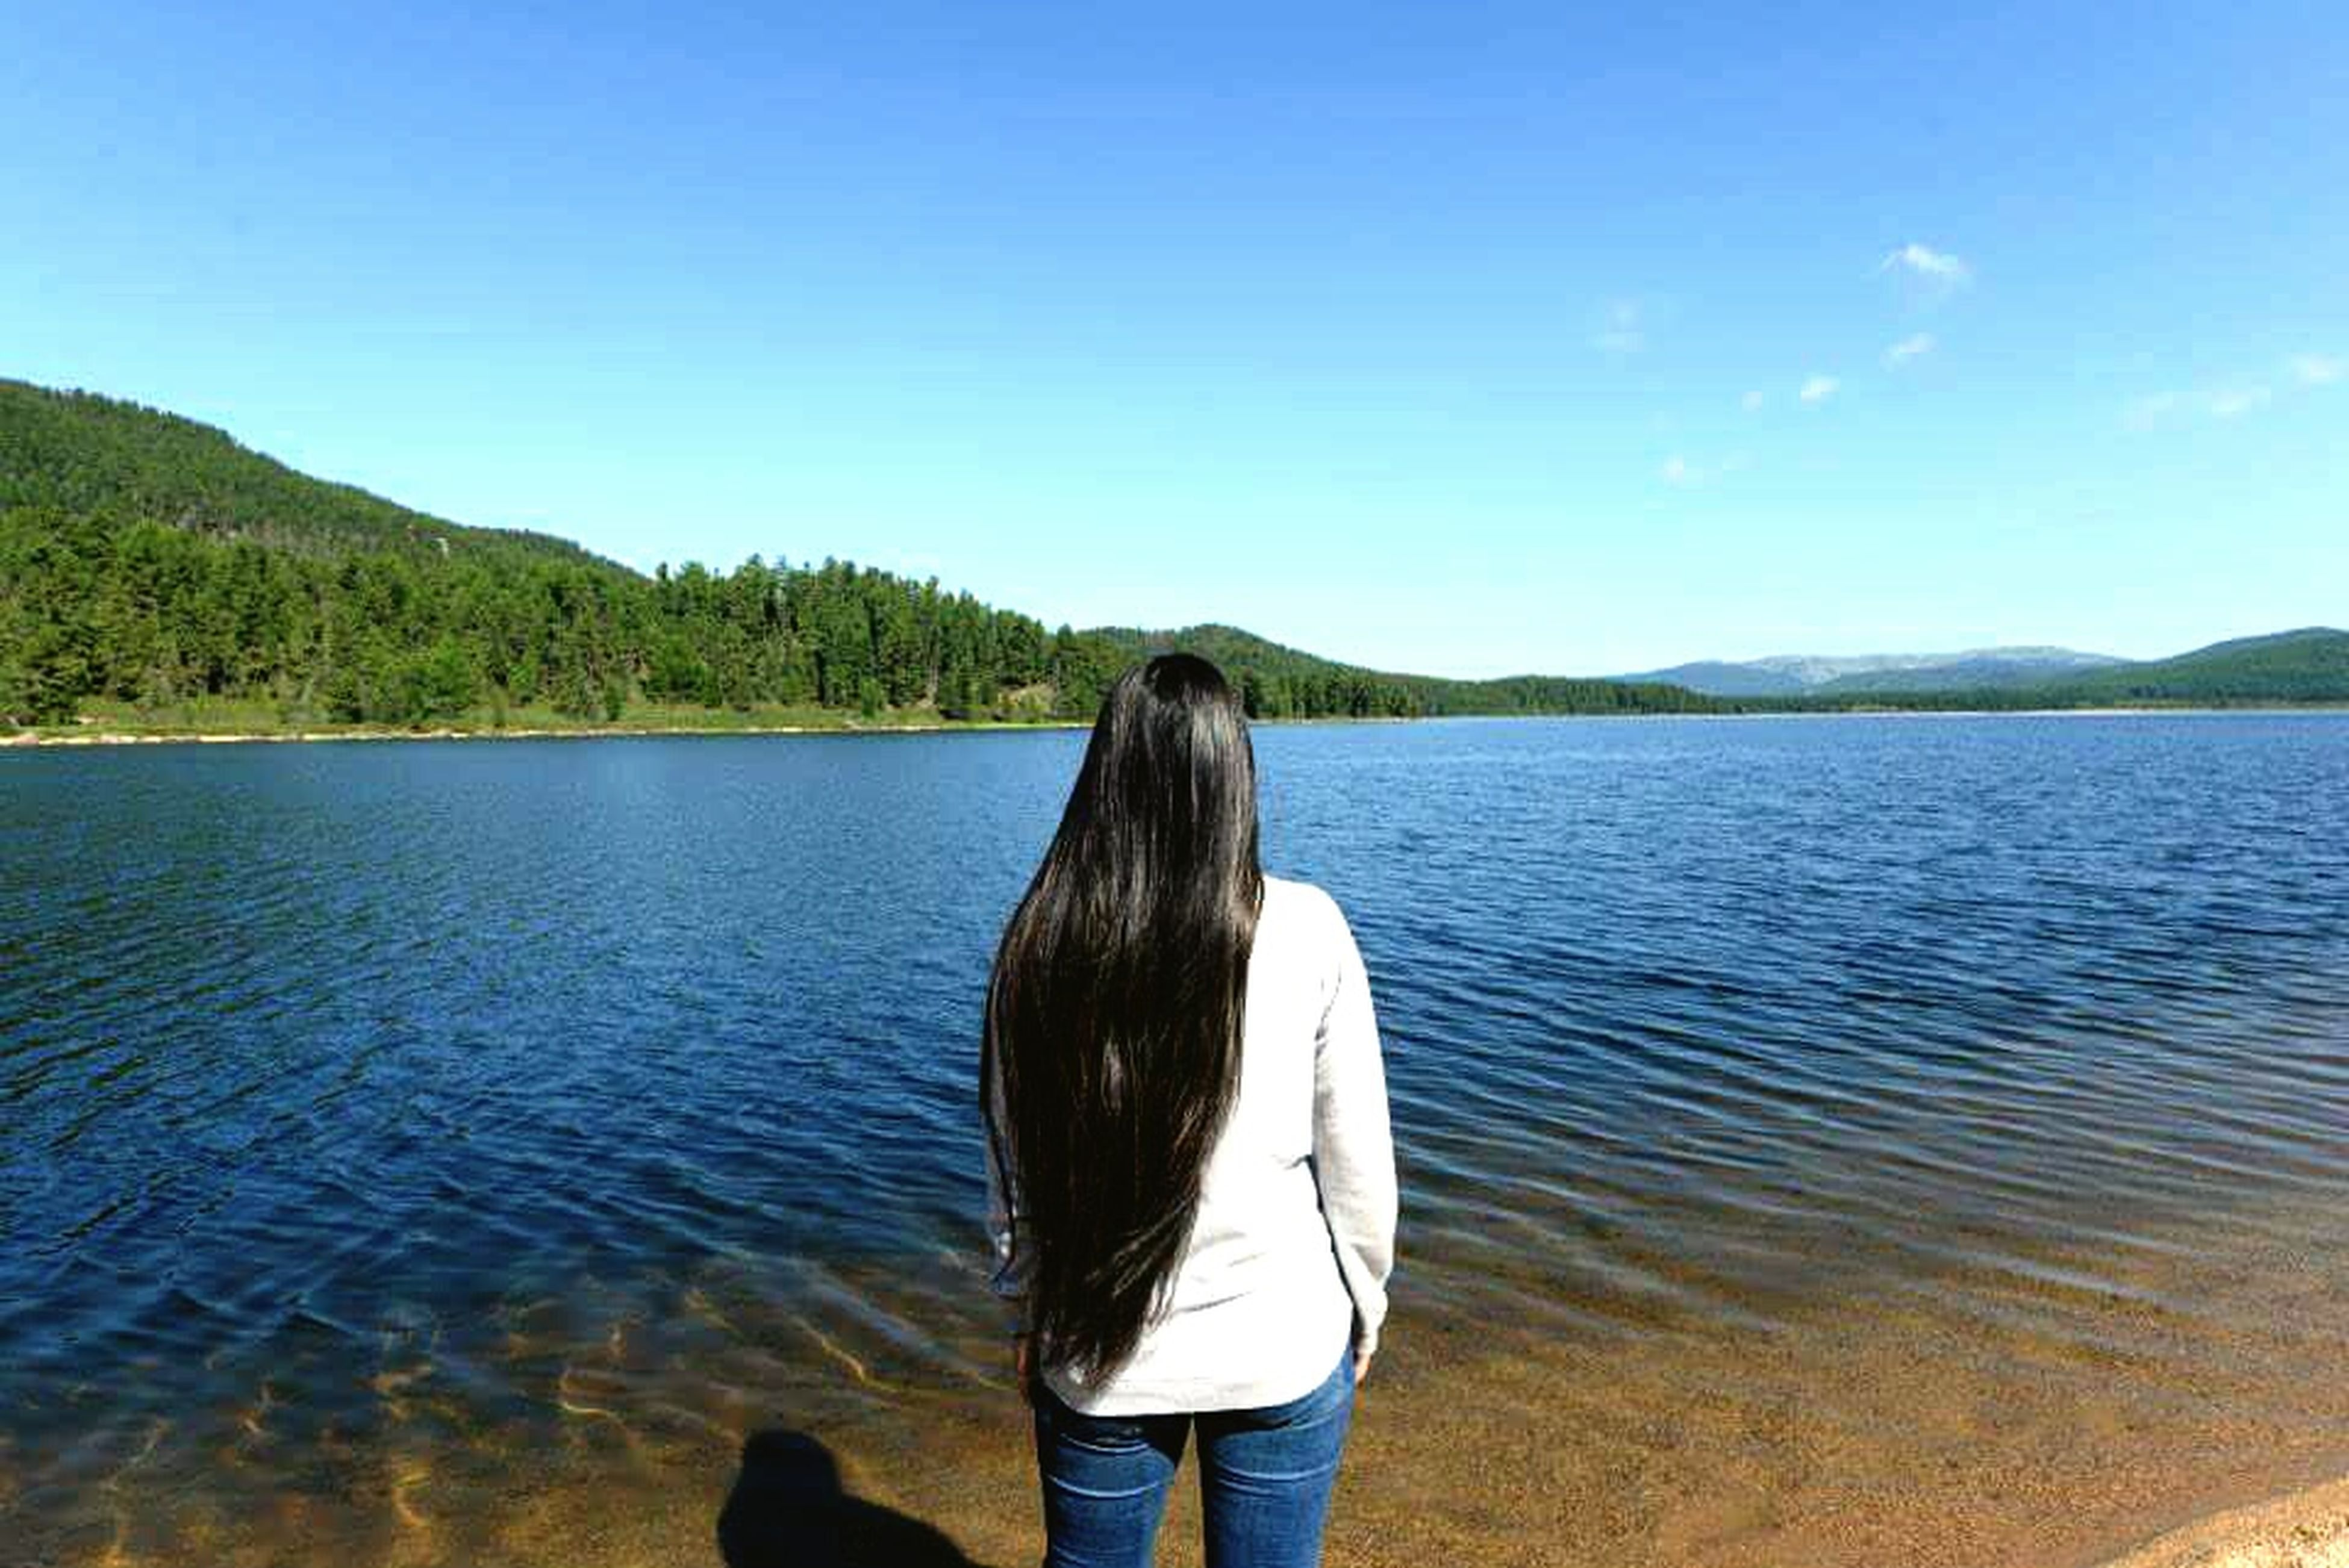 water, tranquility, lake, tranquil scene, rear view, scenics, mountain, lifestyles, beauty in nature, leisure activity, standing, nature, sky, clear sky, person, blue, long hair, idyllic